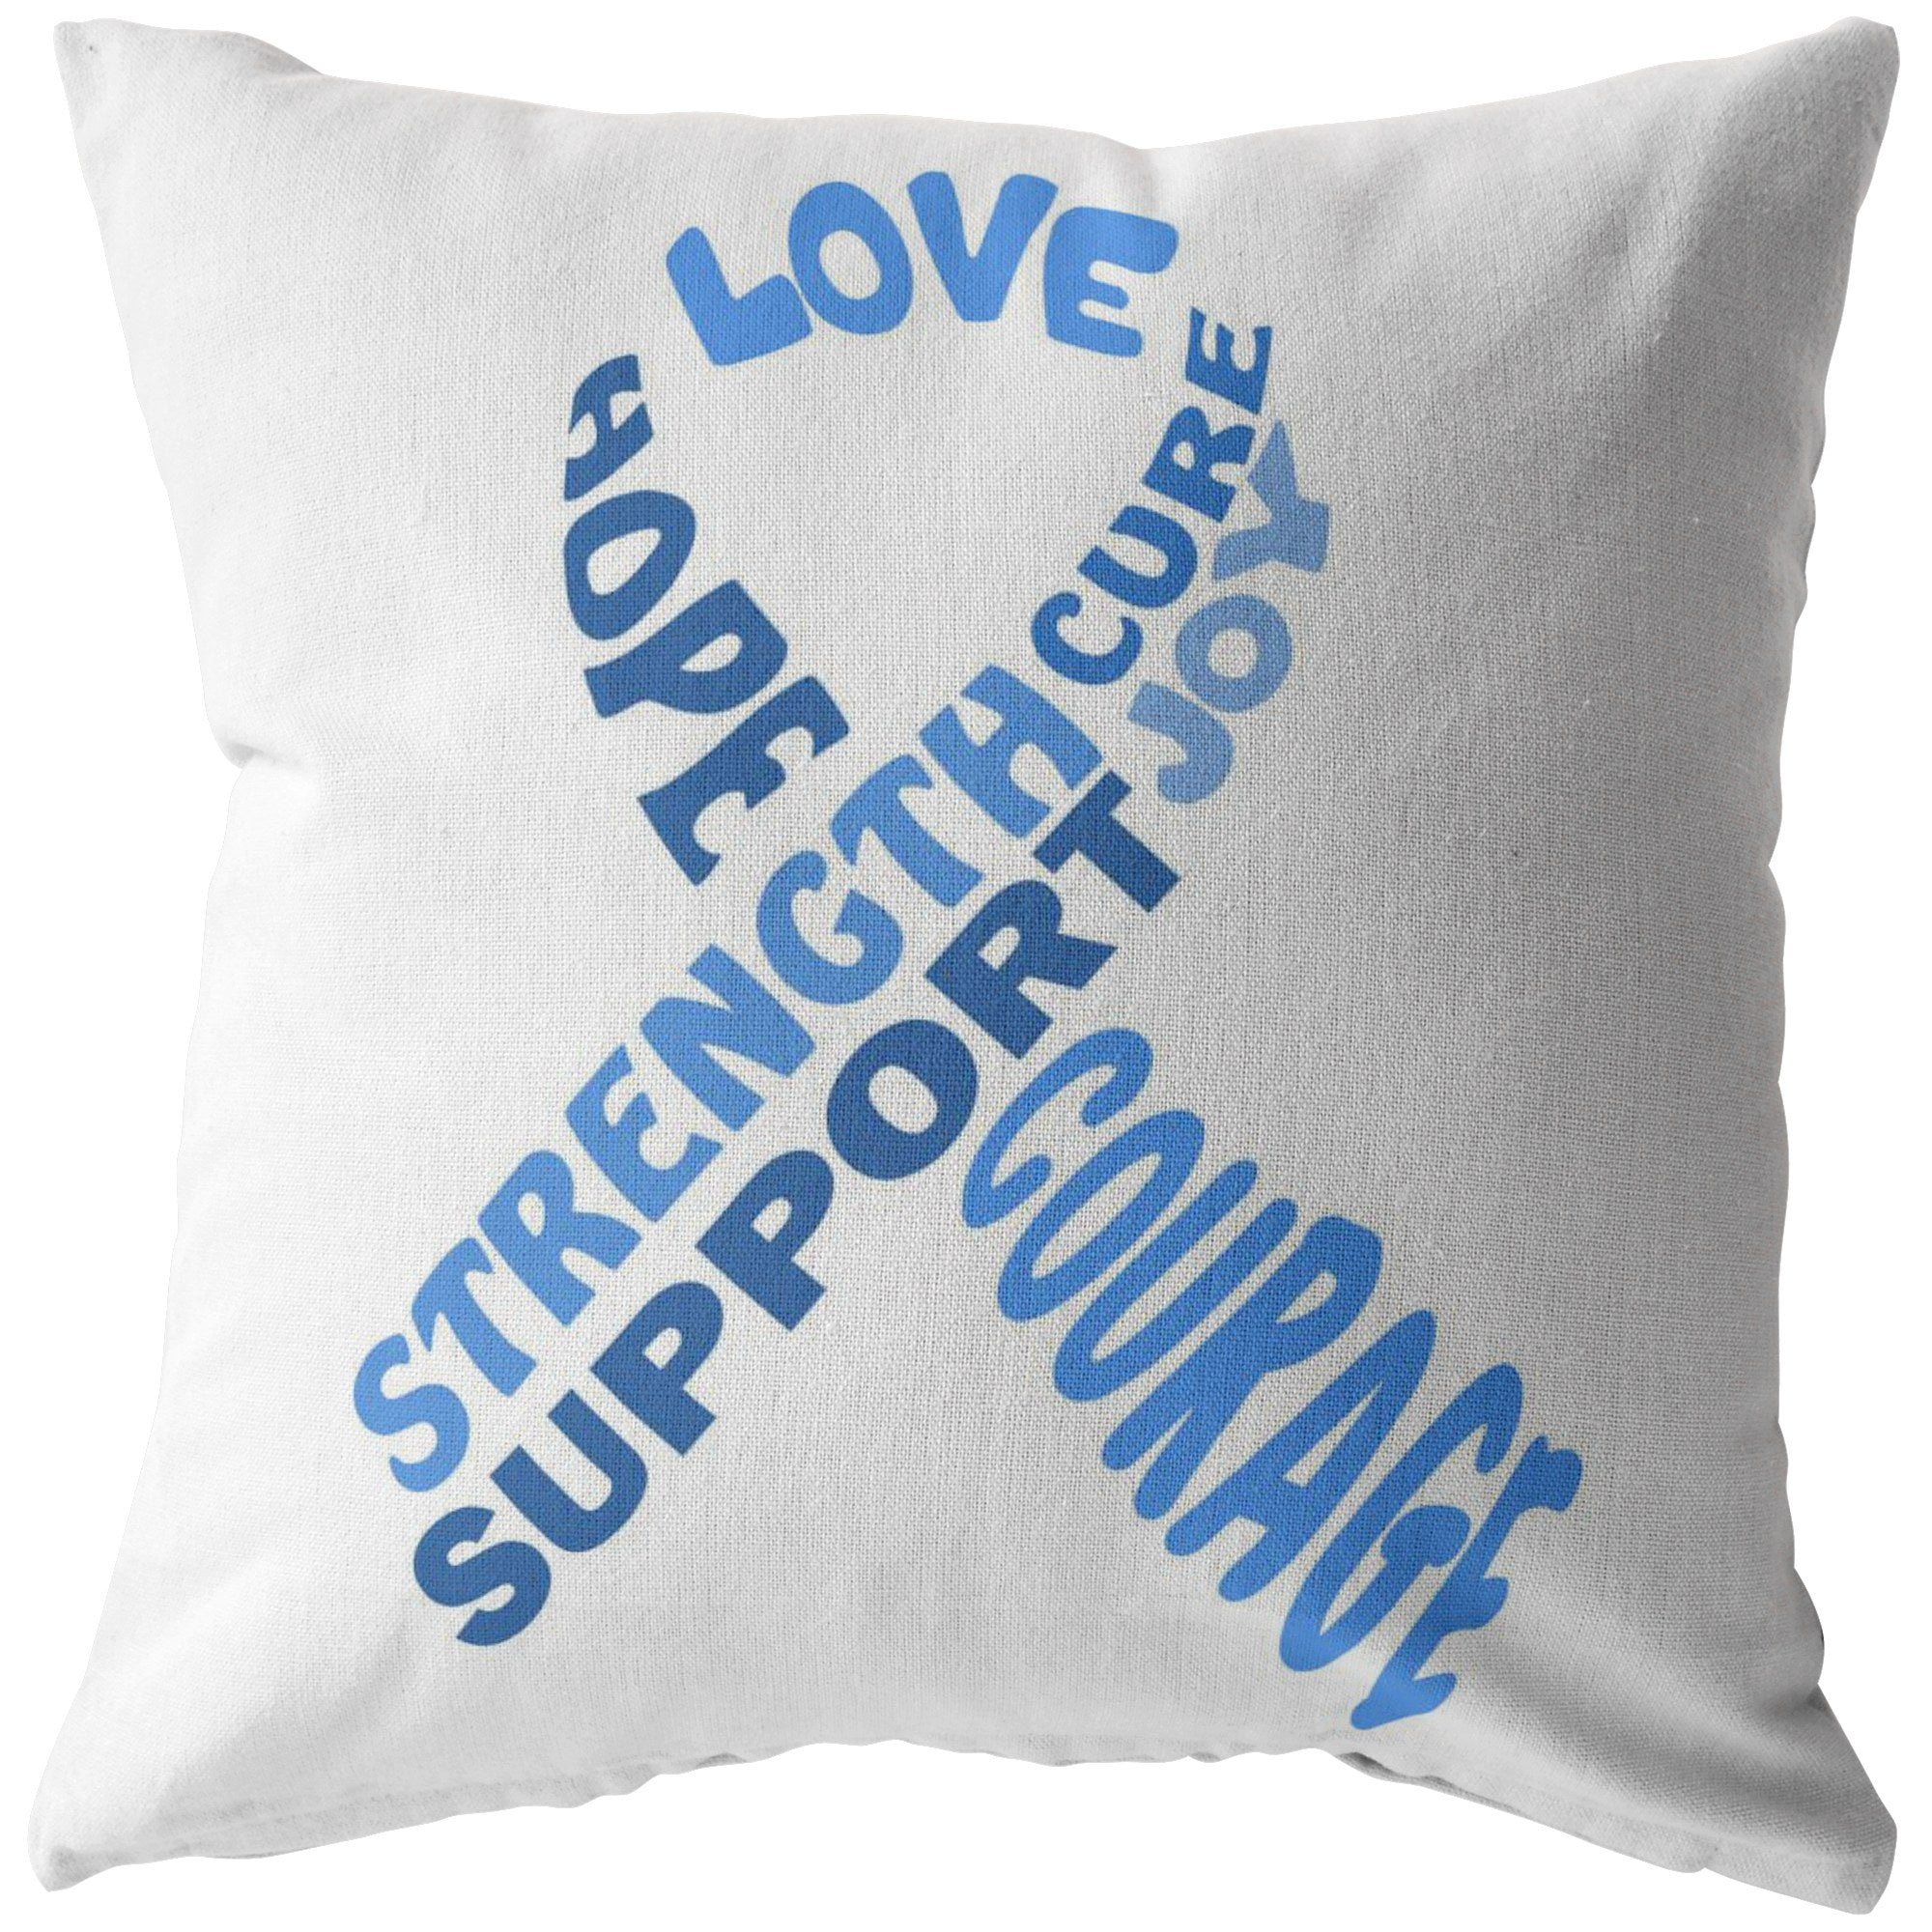 Light Blue Awareness Ribbon With Words Pillow - The Unchargeables